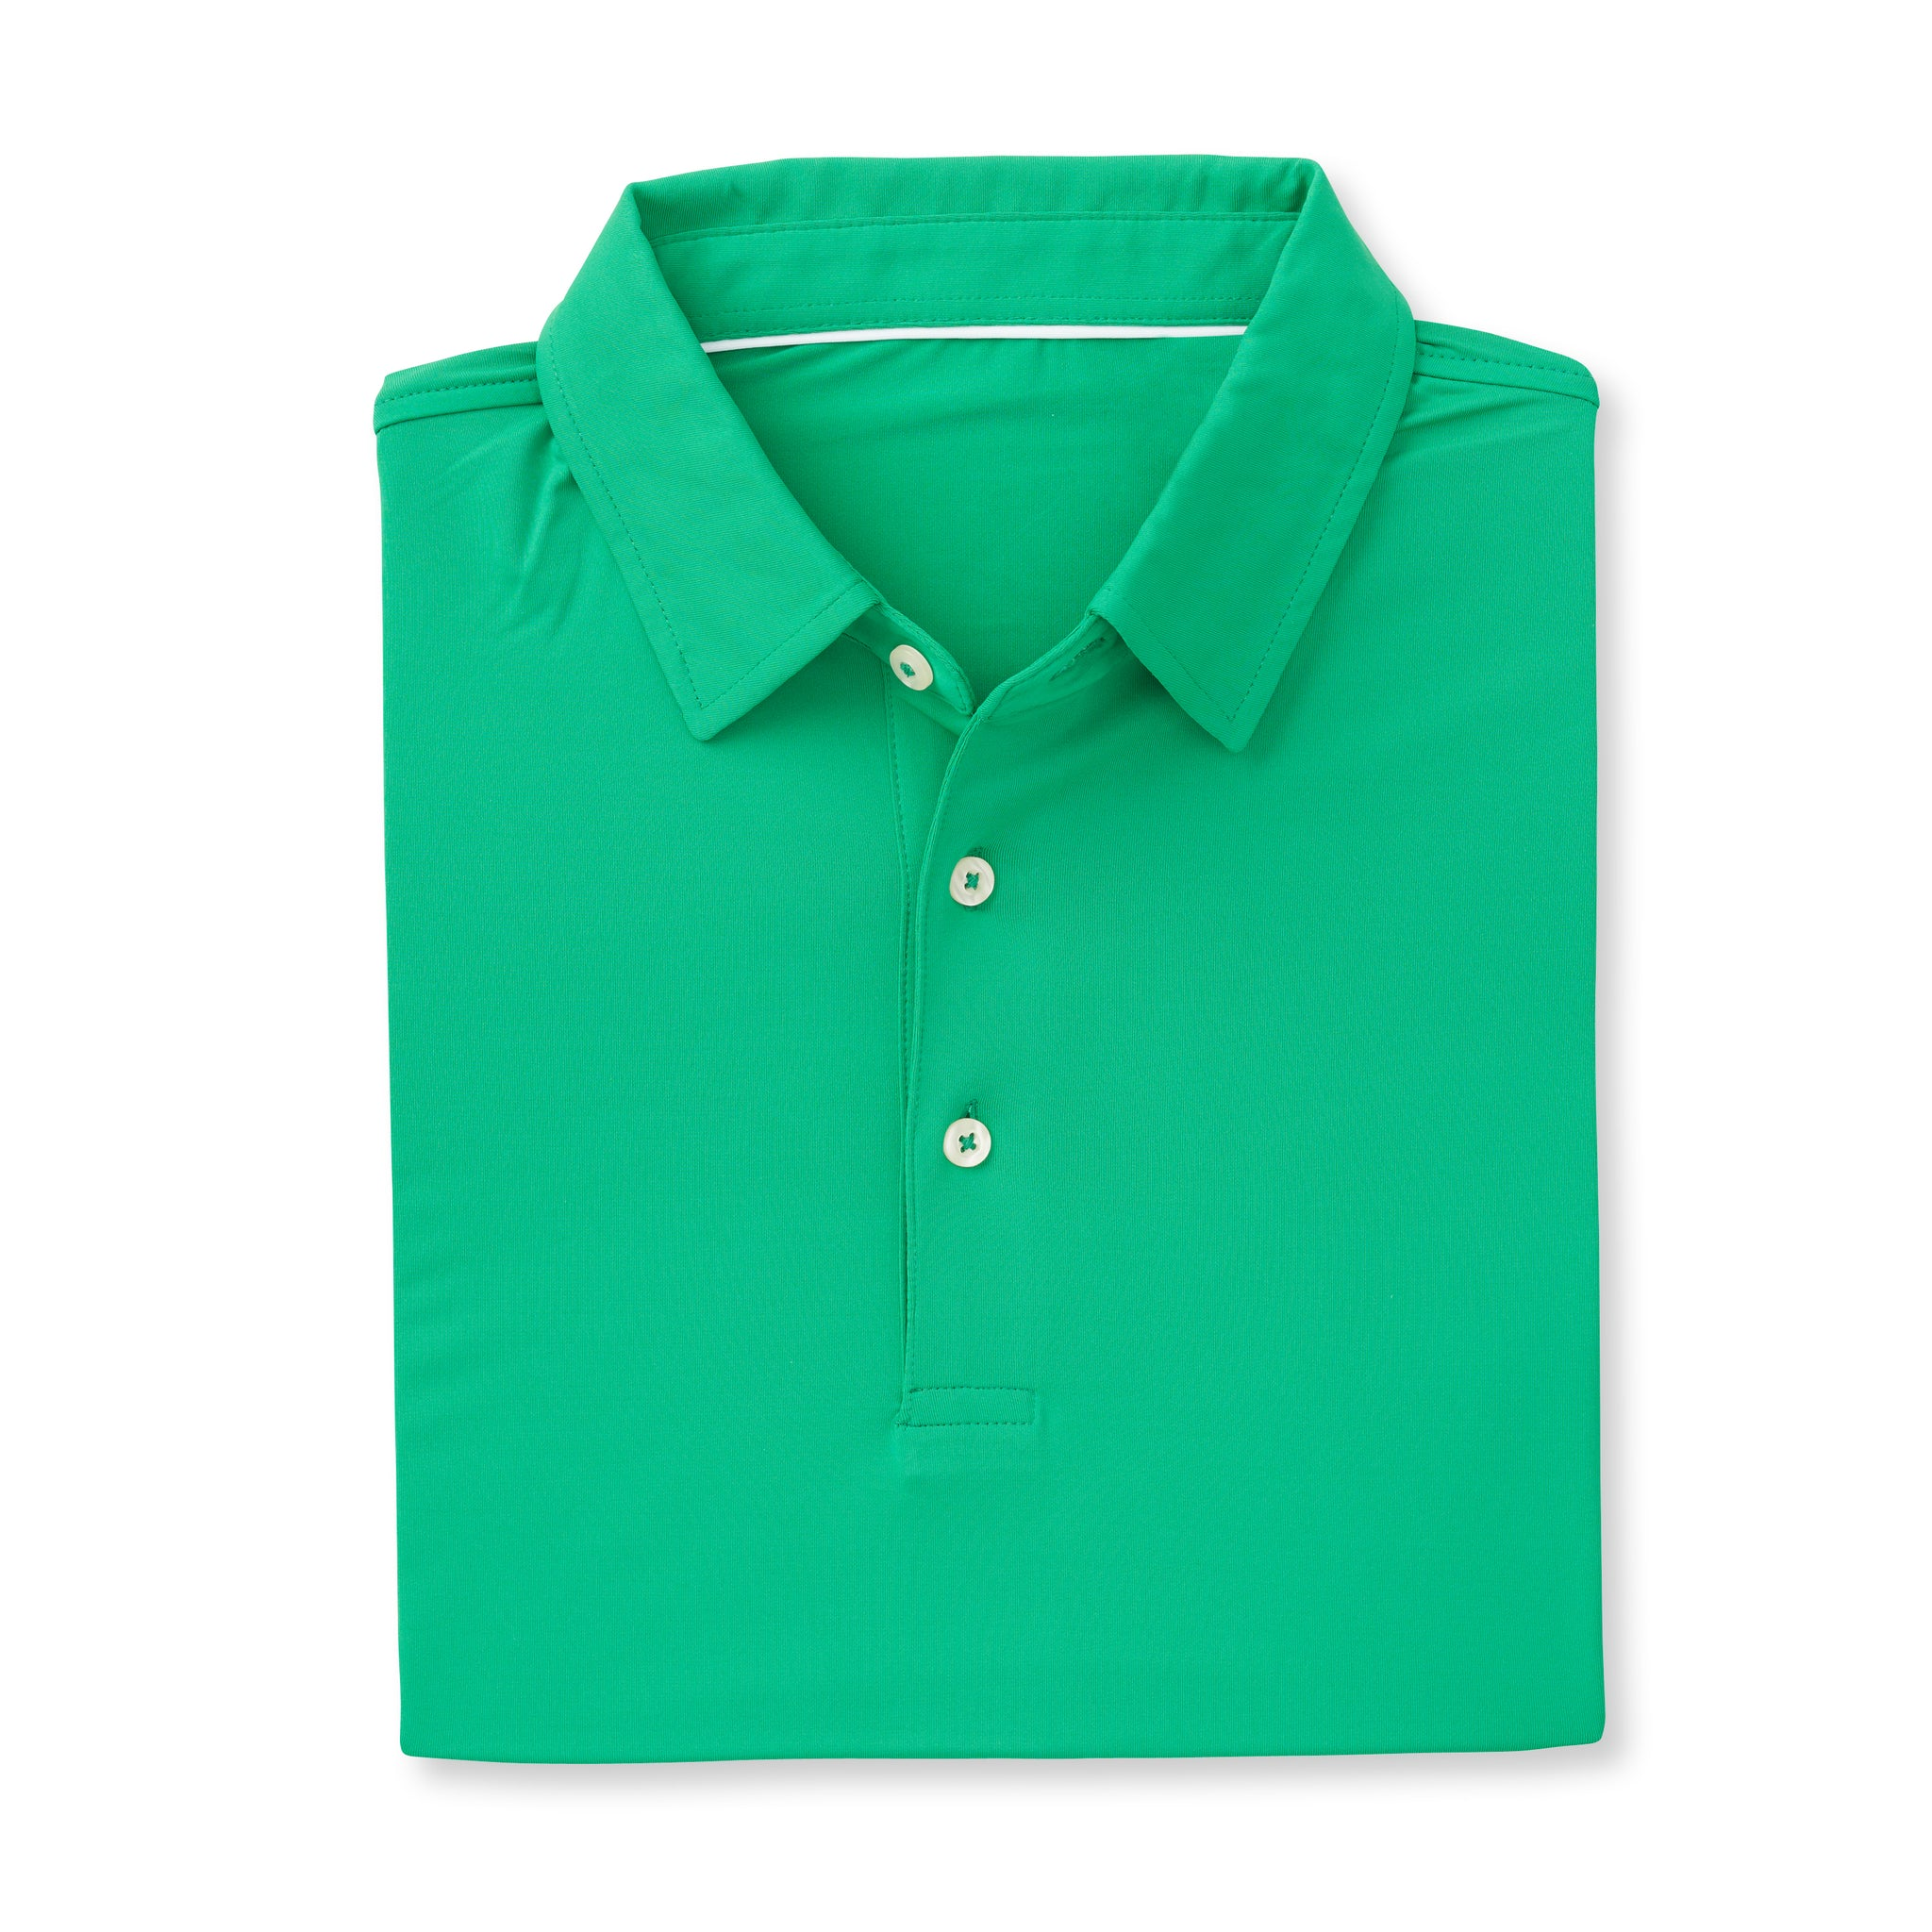 ECOTEC Short Sleeve Polo - Turf IS26000